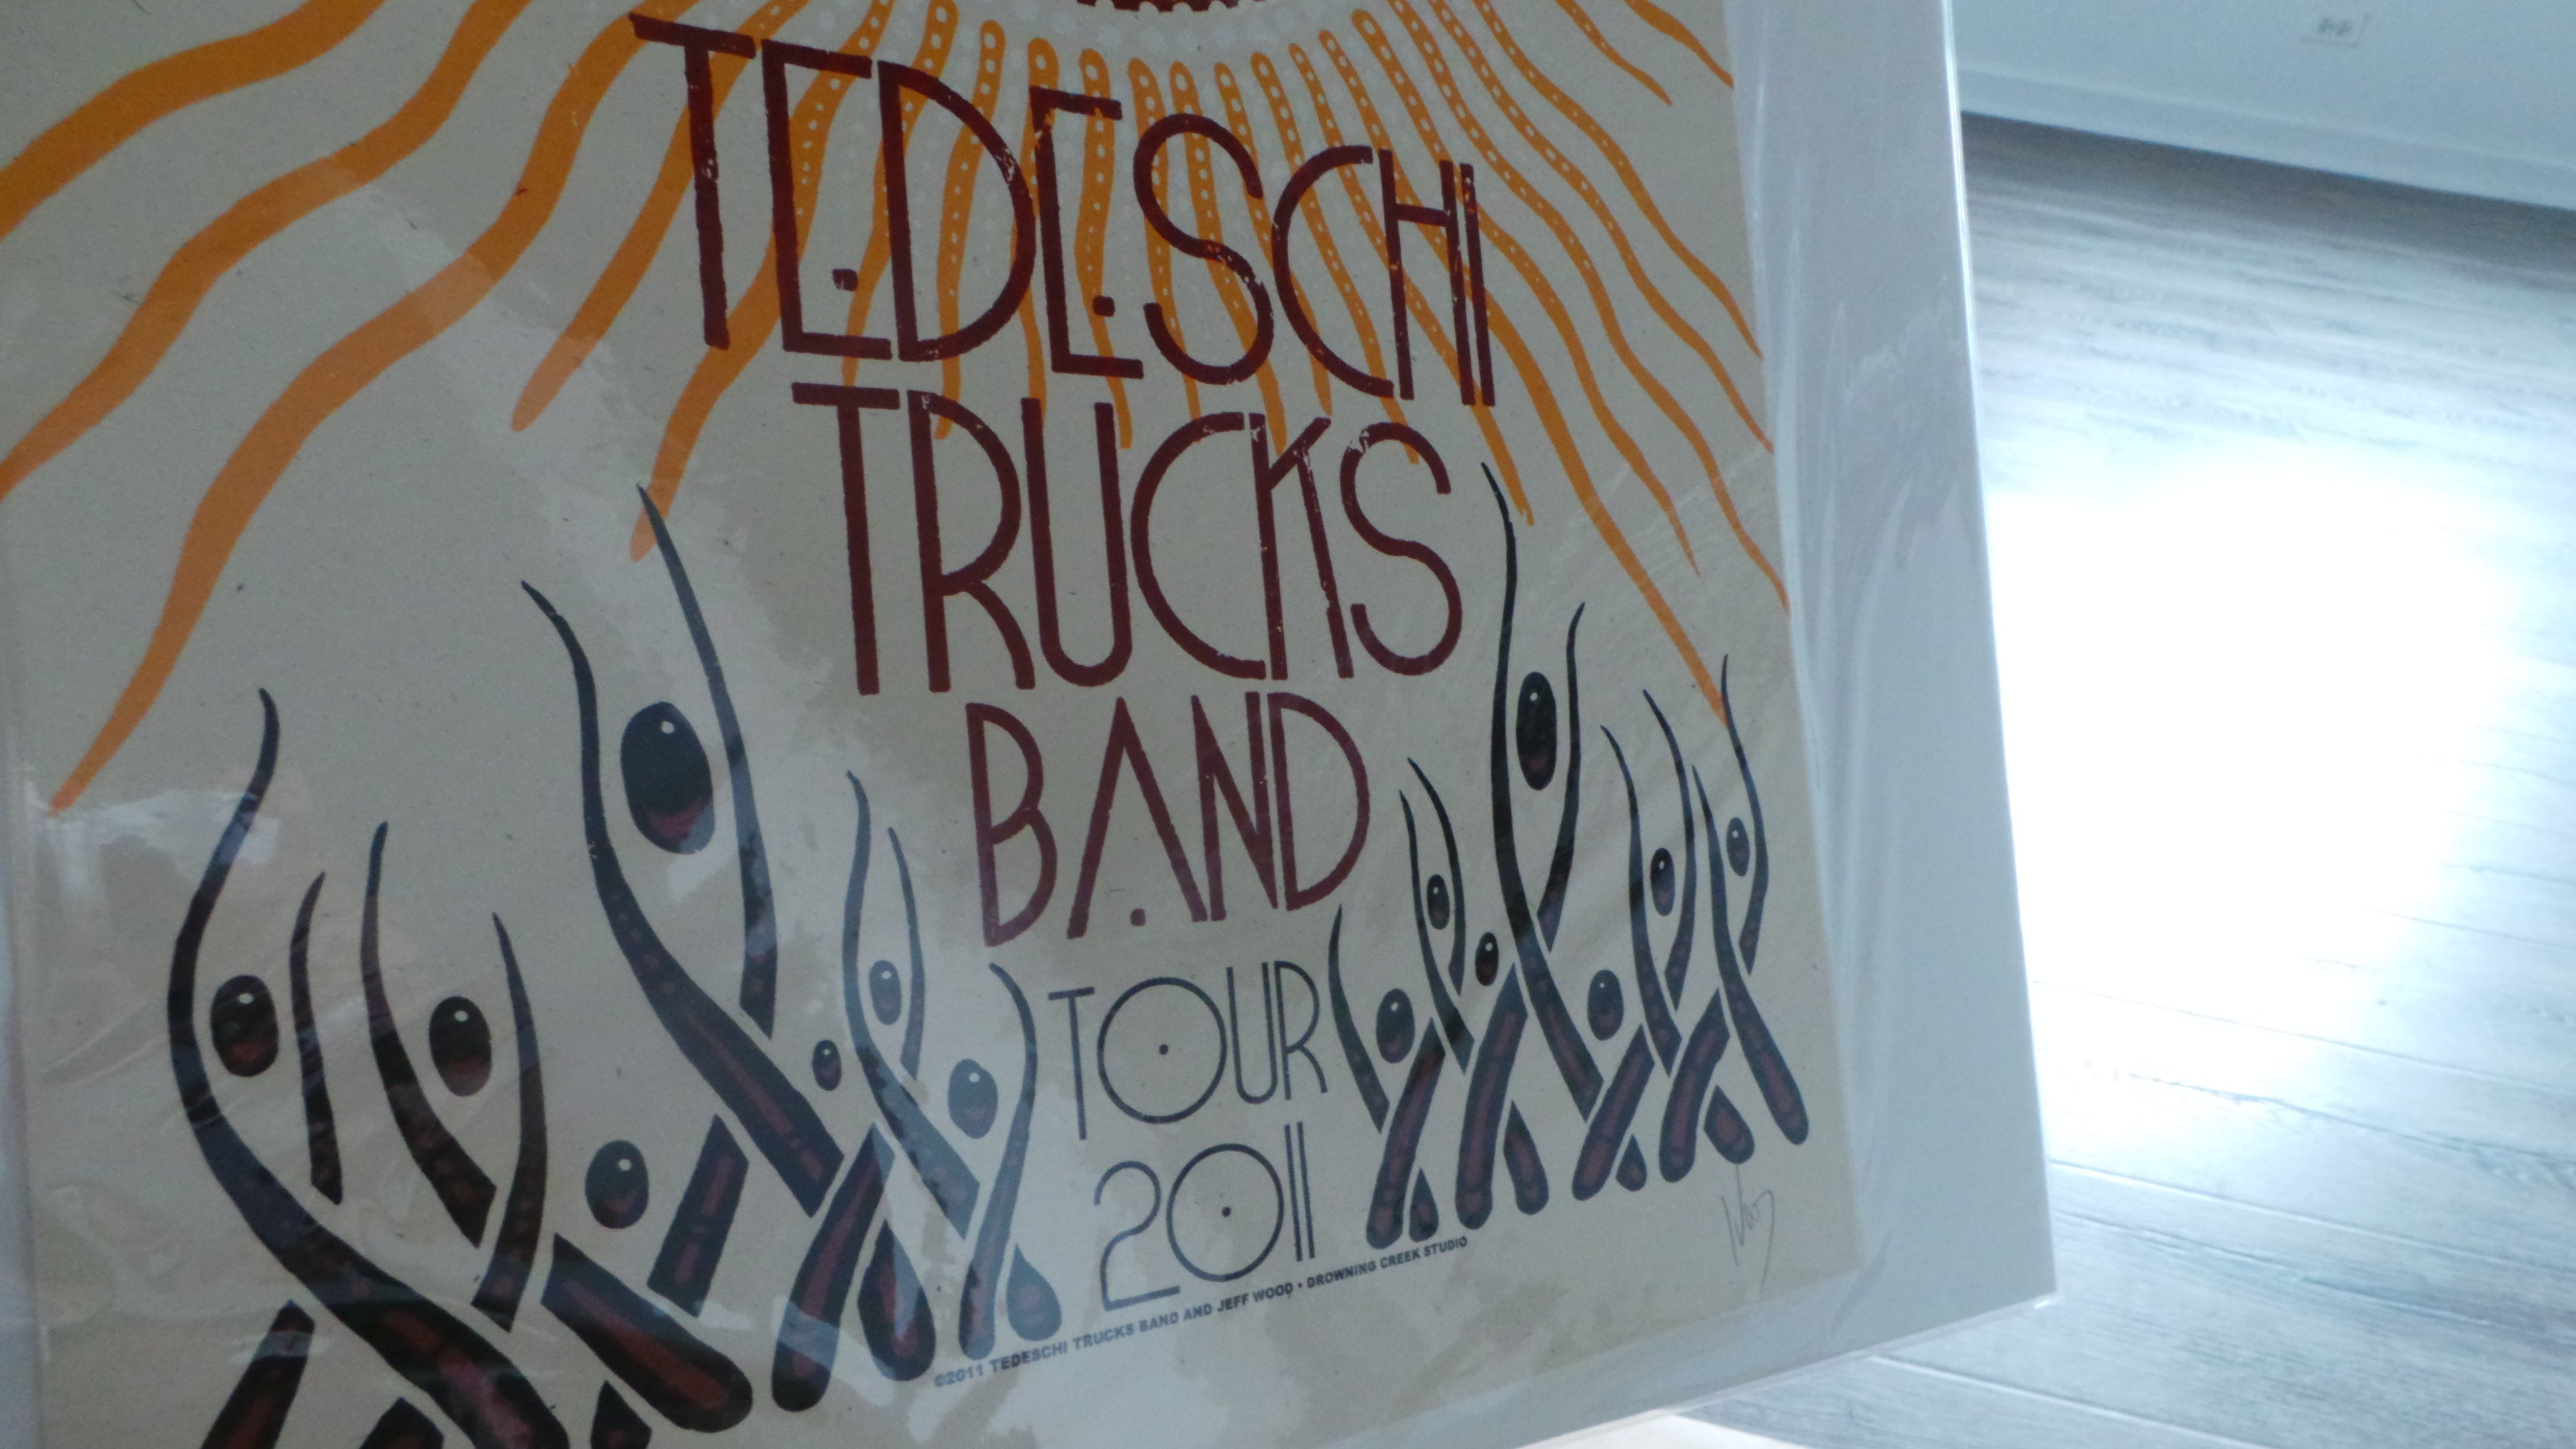 2011 Tedeschi Trucks Band Revelator Tour Poster by Jeff Wood, S/N'd